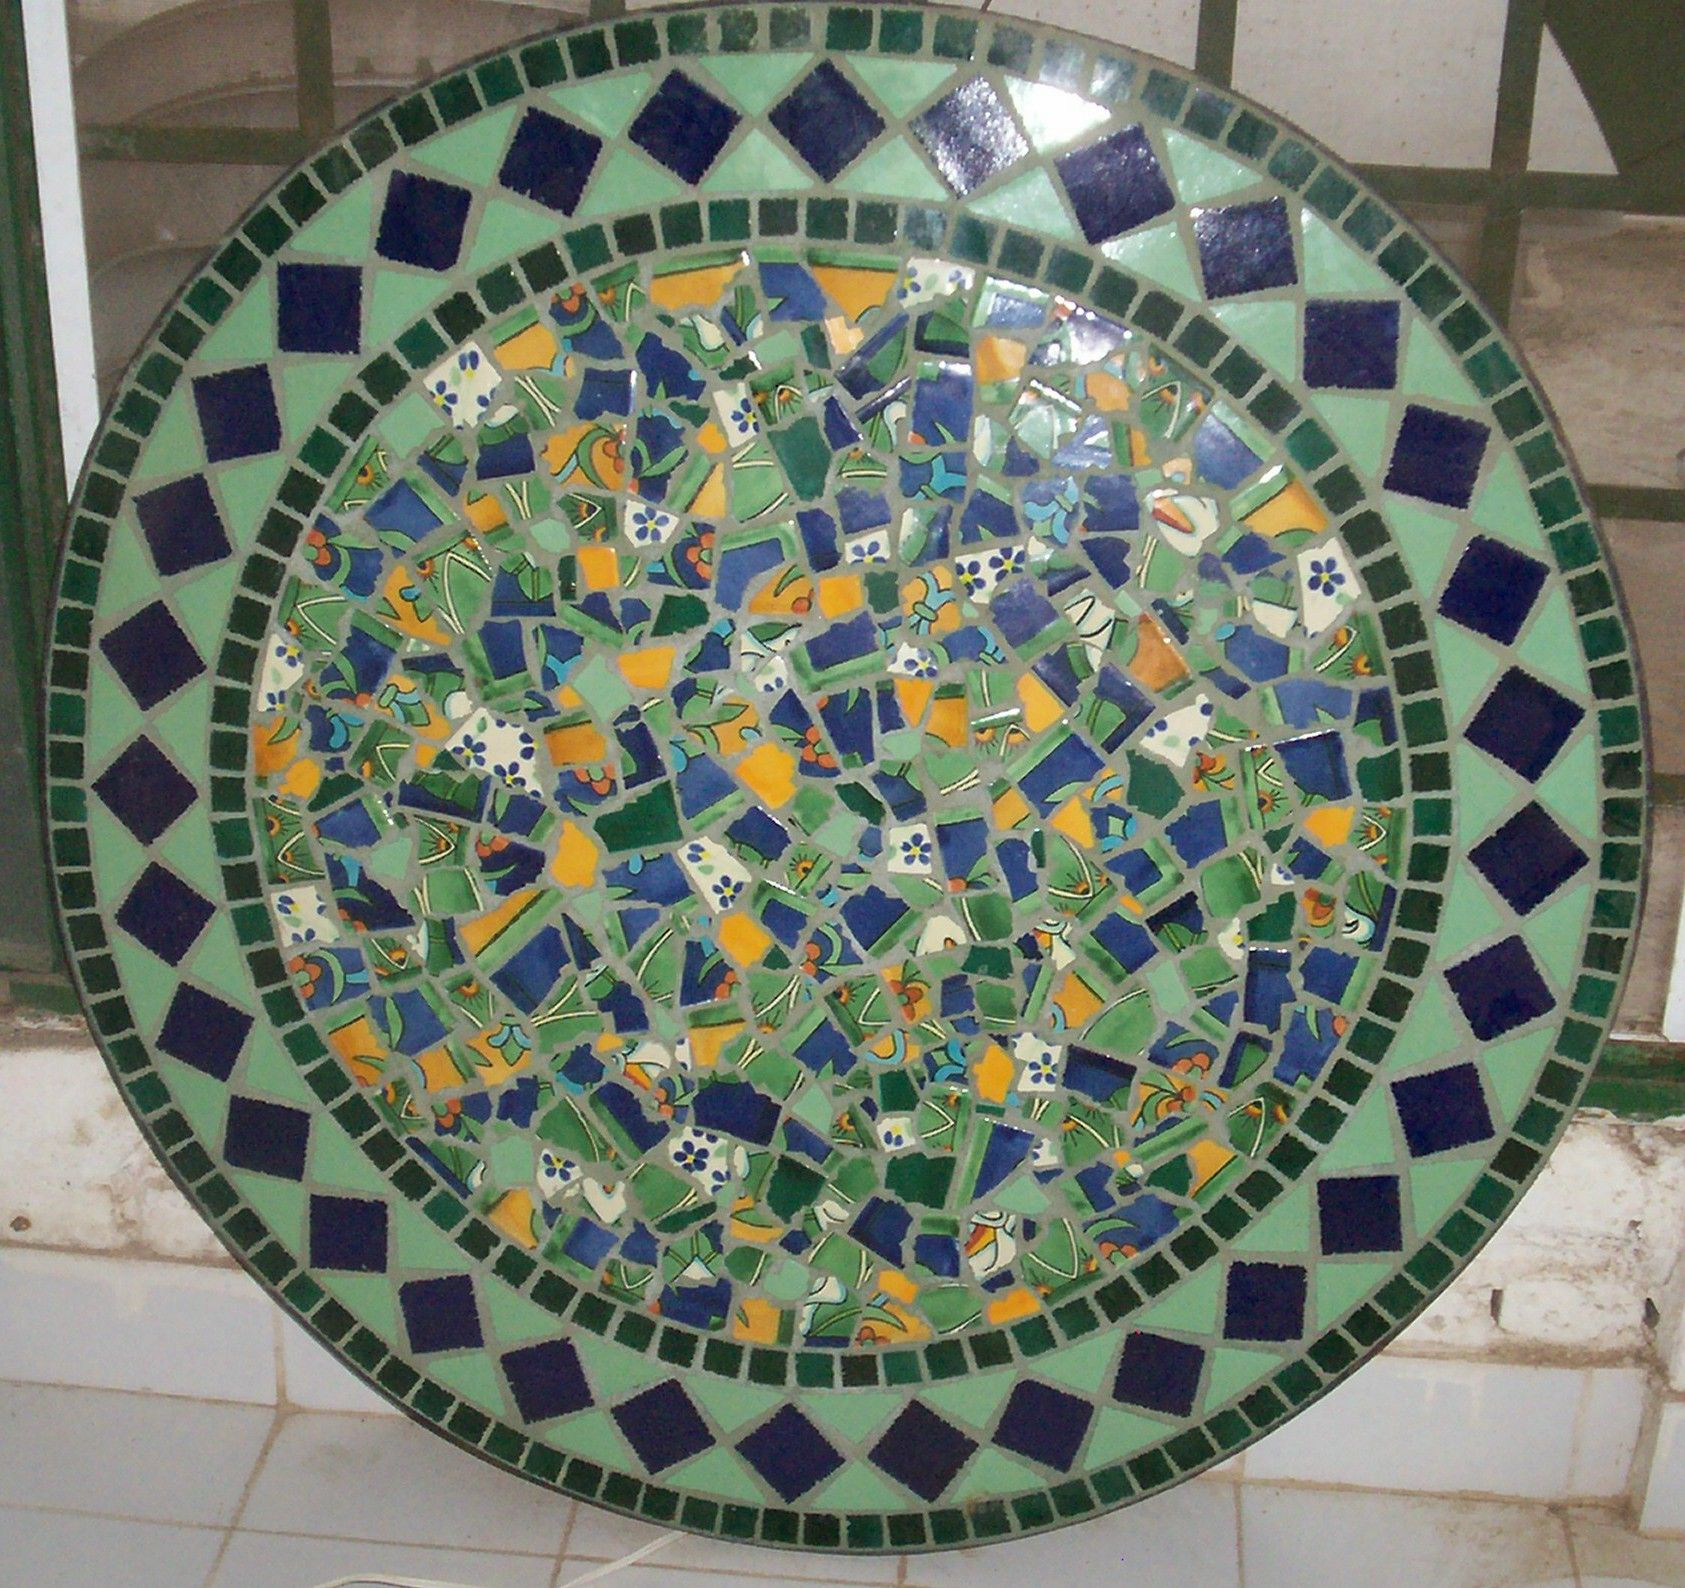 Broken Mexican Tiles For Sale Hand Made Mexican Tile Mosaic Table - Broken ceramic tiles for sale